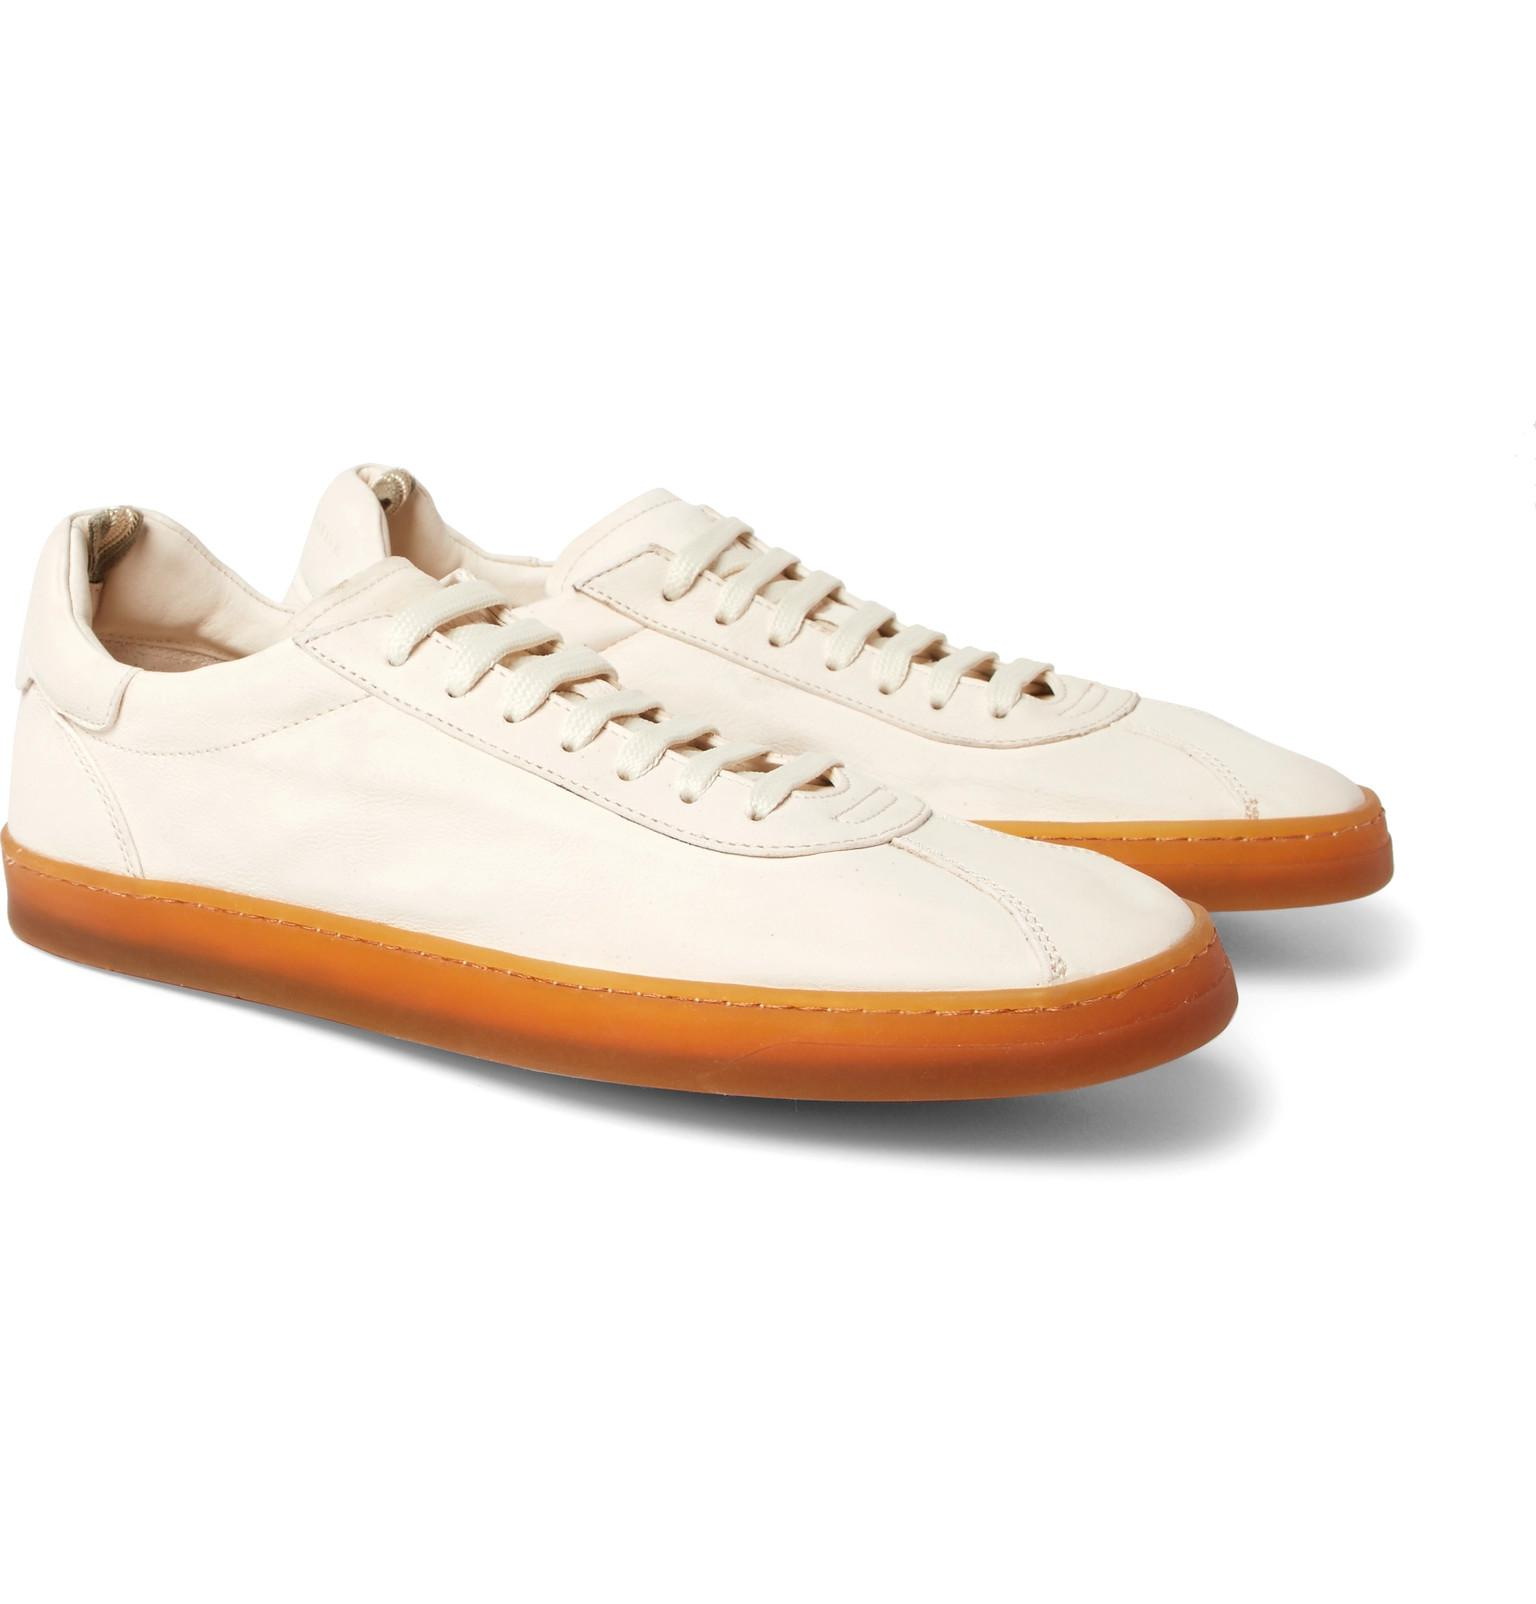 Karma Full-grain Leather Sneakers Officine Creative z2GaDC